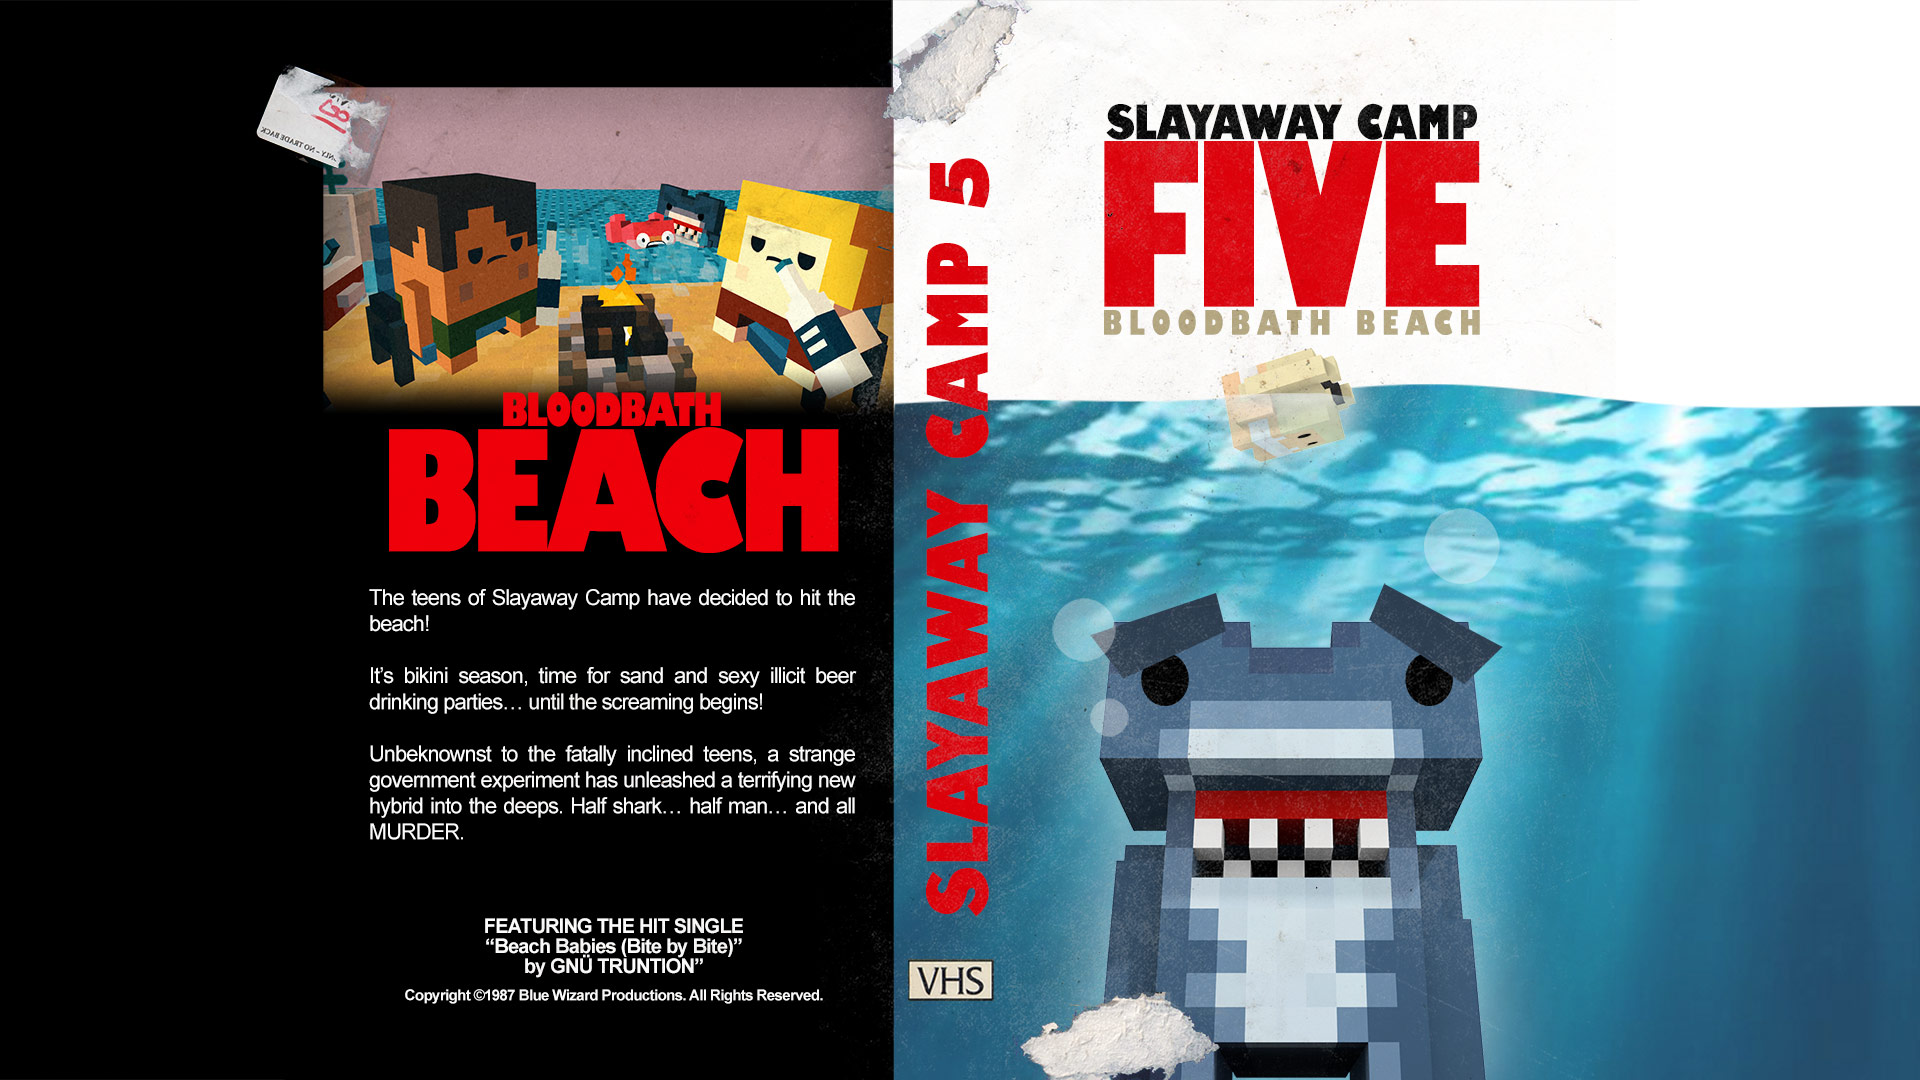 Steam Card Exchange Showcase Slayaway Camp Amplifier Classes From A To H Circuit Cellar 6 Of 10artwork Bloodbath Beach